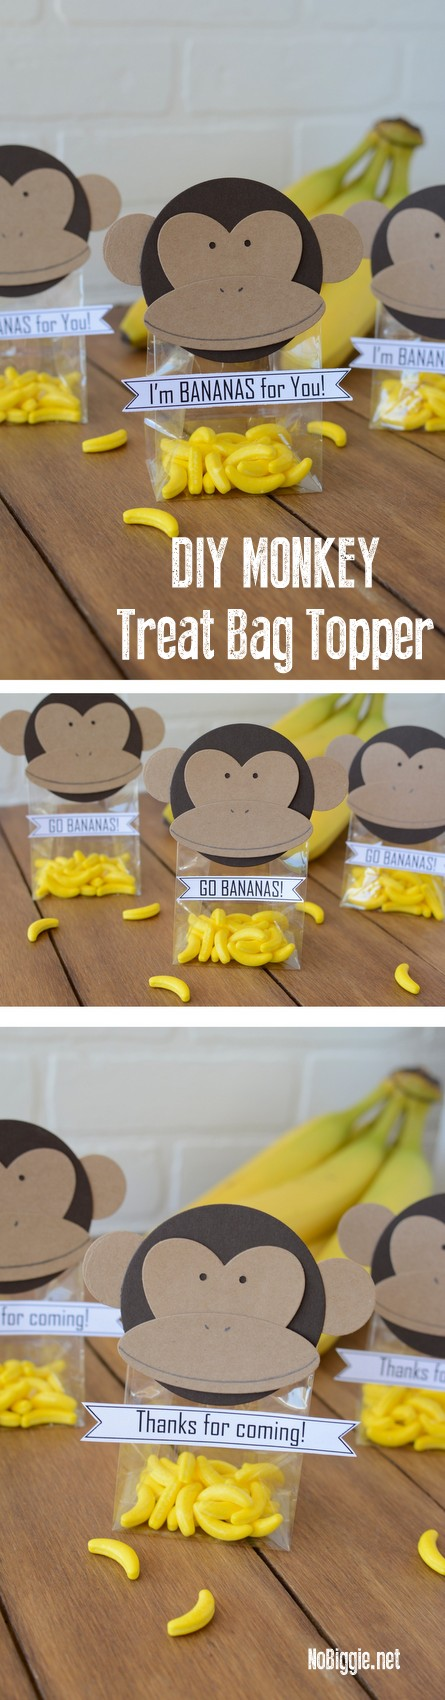 DIY monkey treat bag toppers | NoBiggie.net